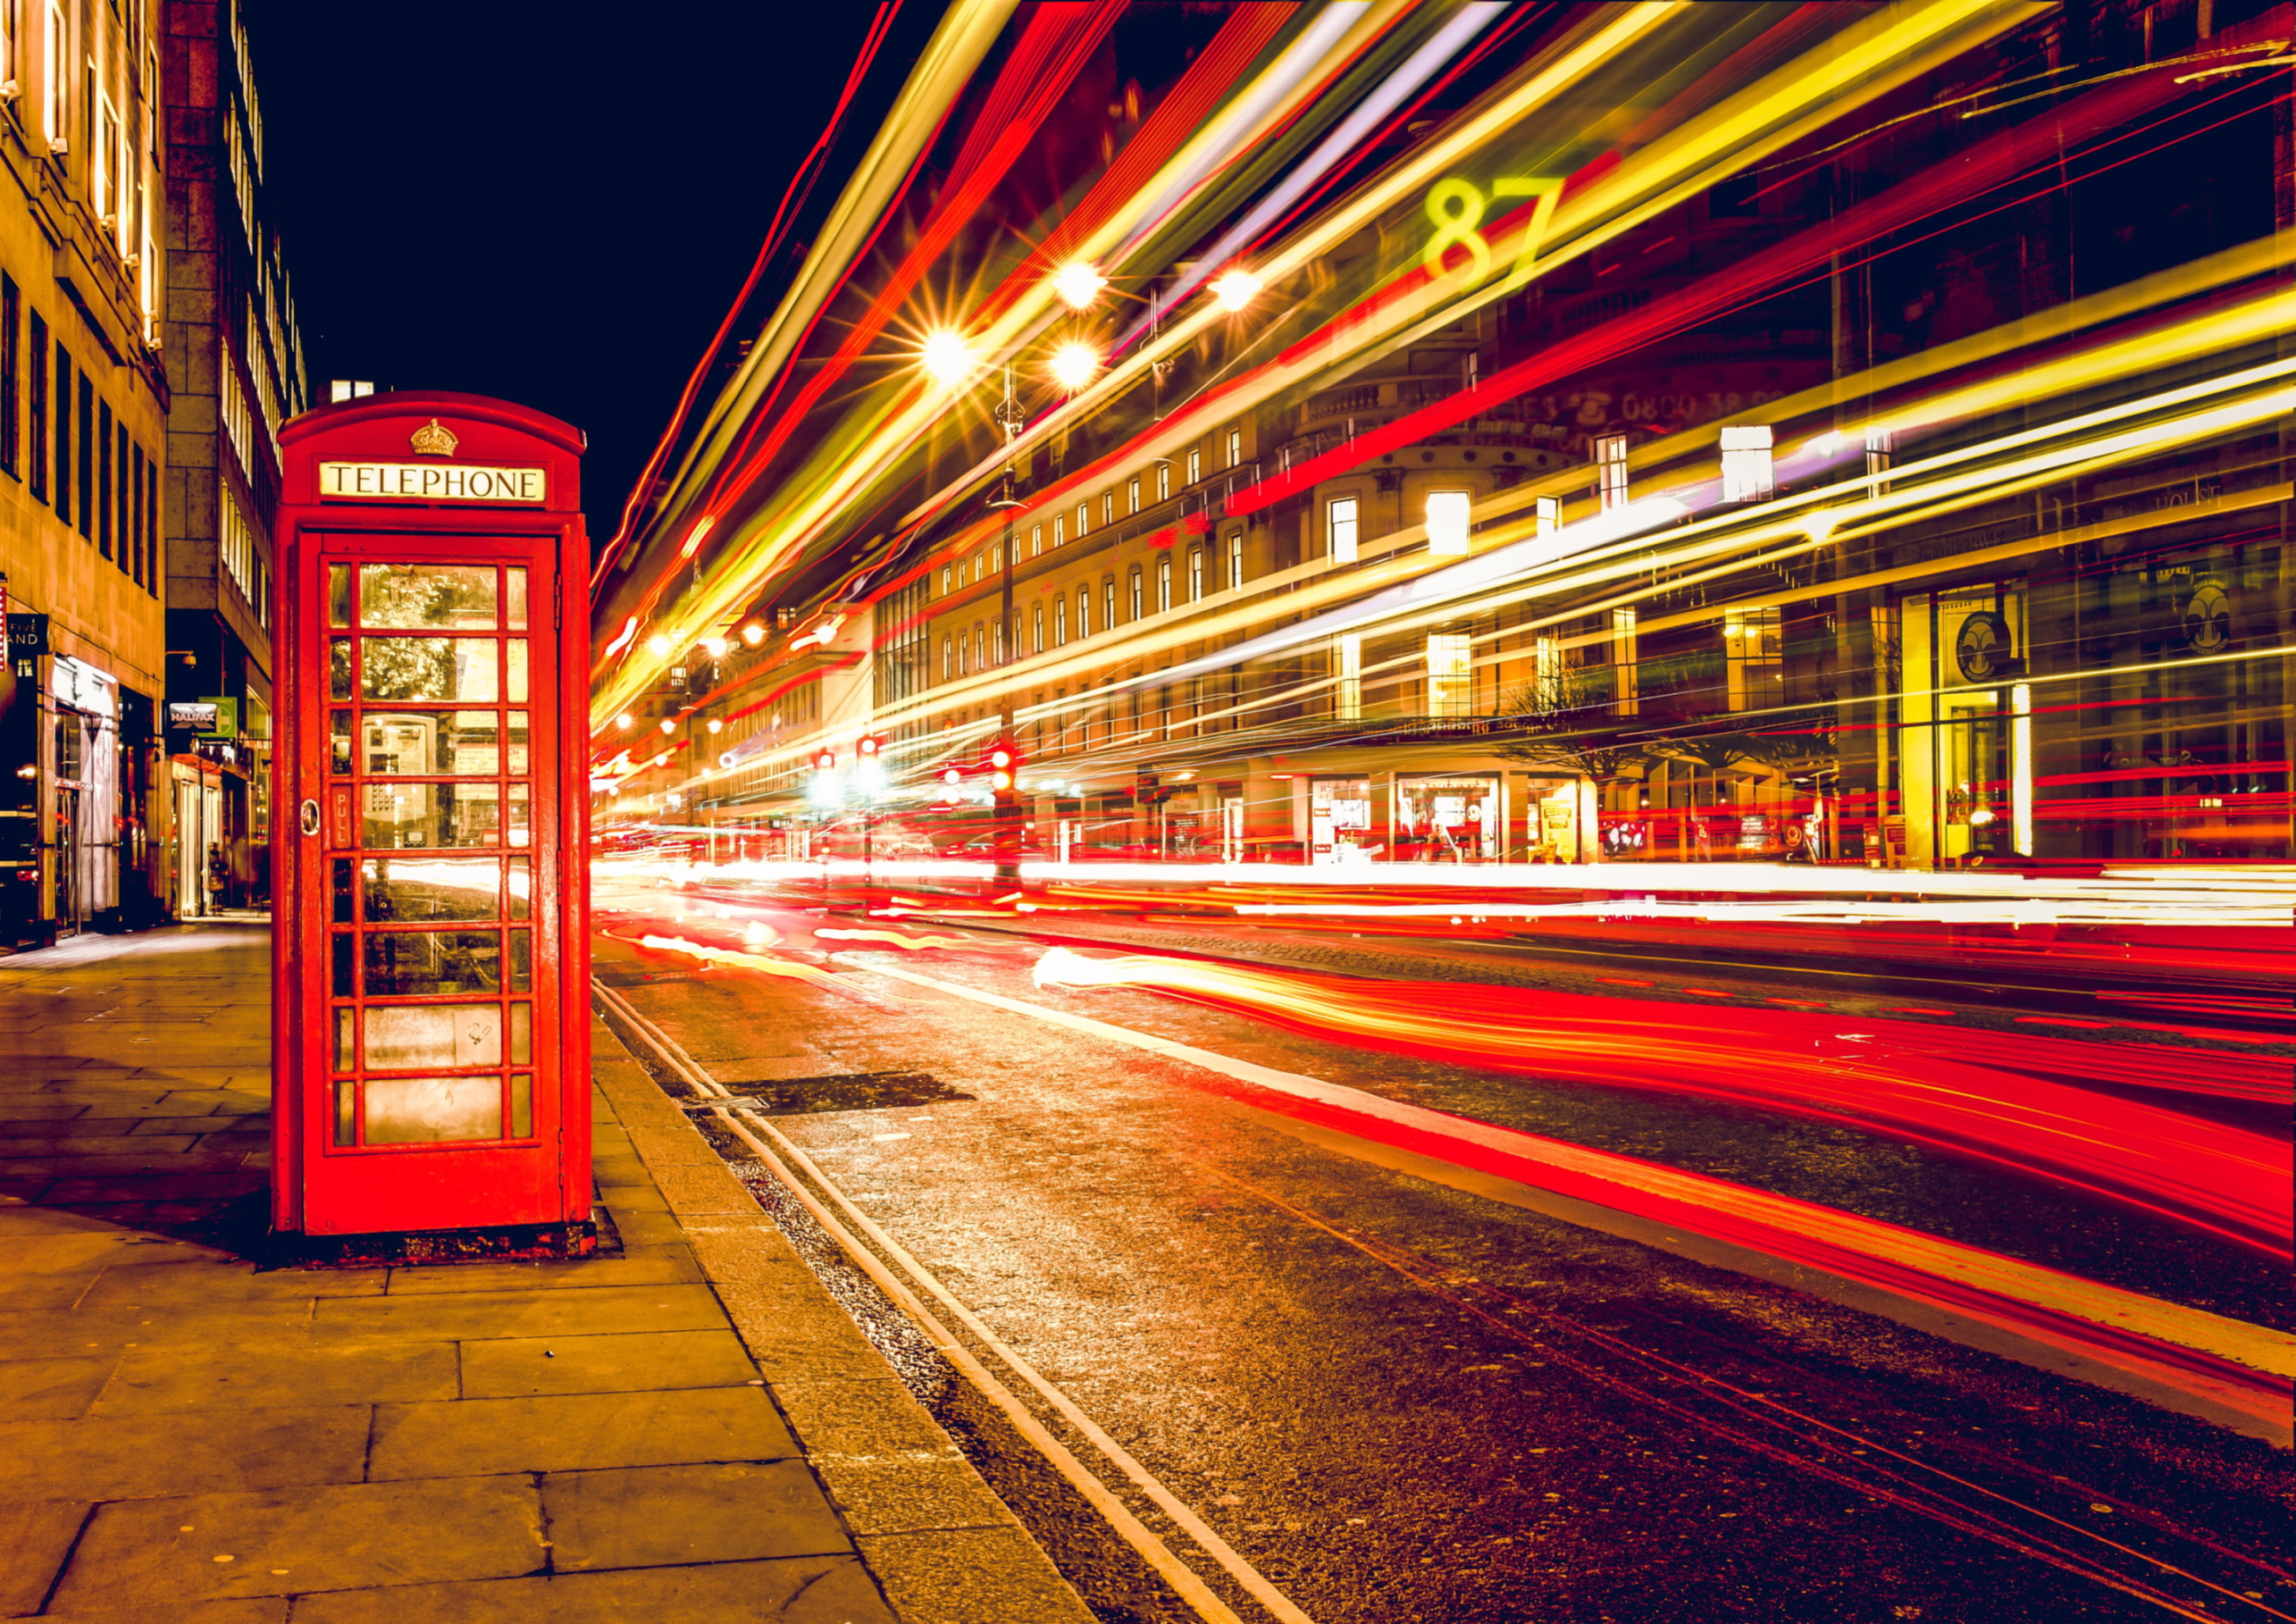 Red Phone Box and fast lights